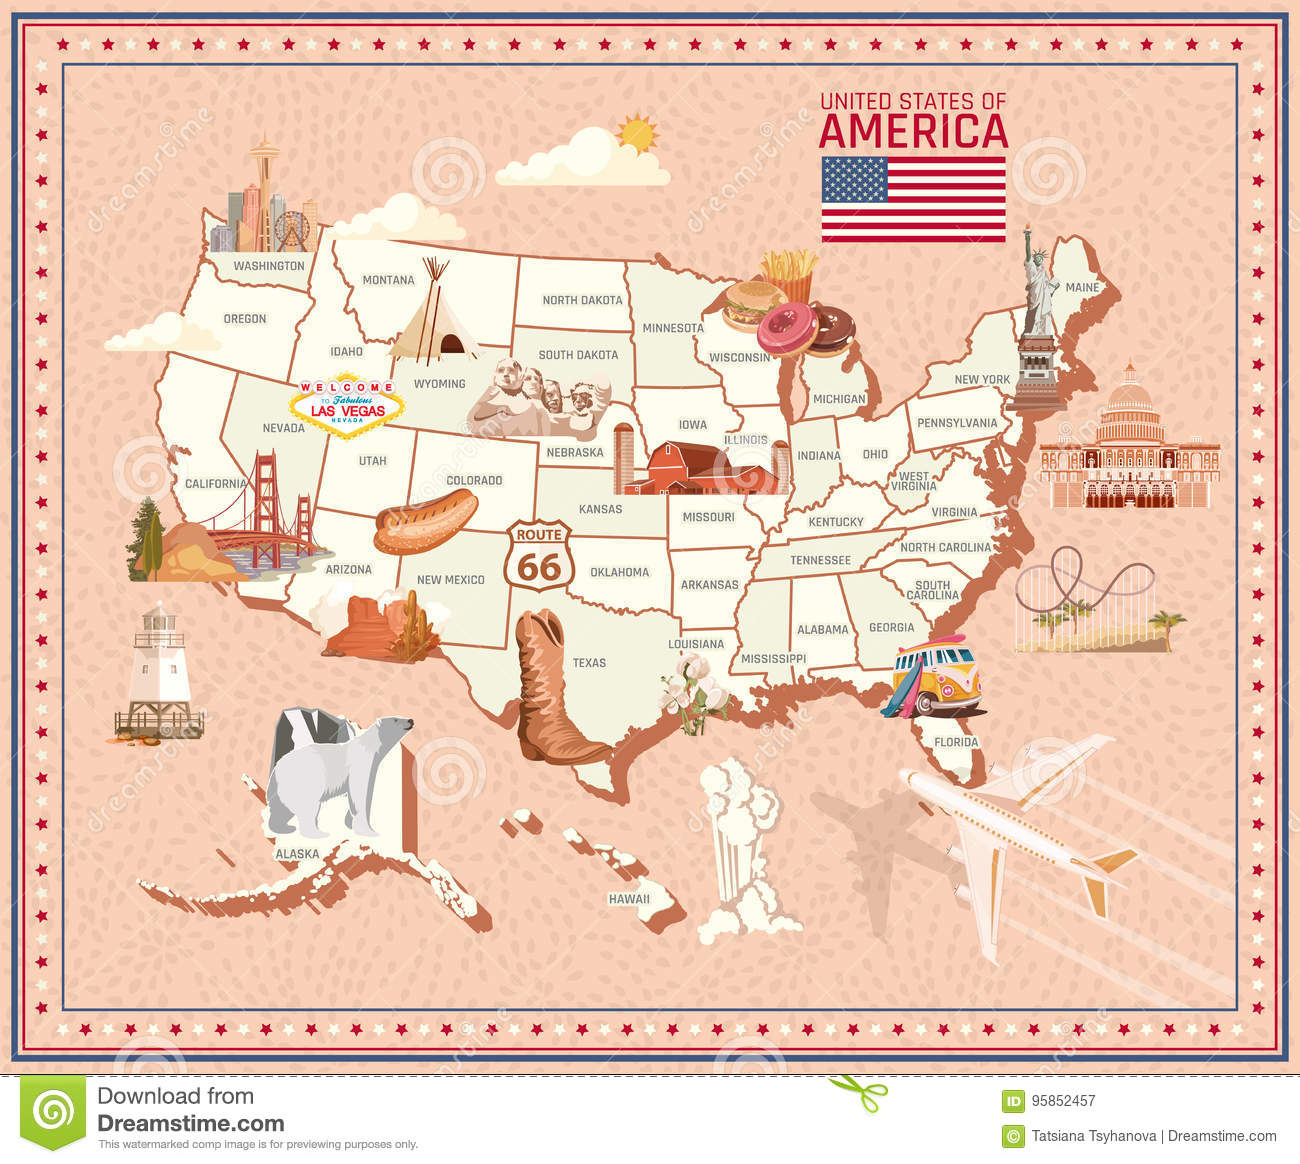 Welcome To USA. United States Of America Poster With Statue ... on mexico map illustration, earth map illustration, italy map illustration, car illustration, africa map illustration, teacher illustration, typist illustration, vector illustration, world map illustration, canada map illustration,